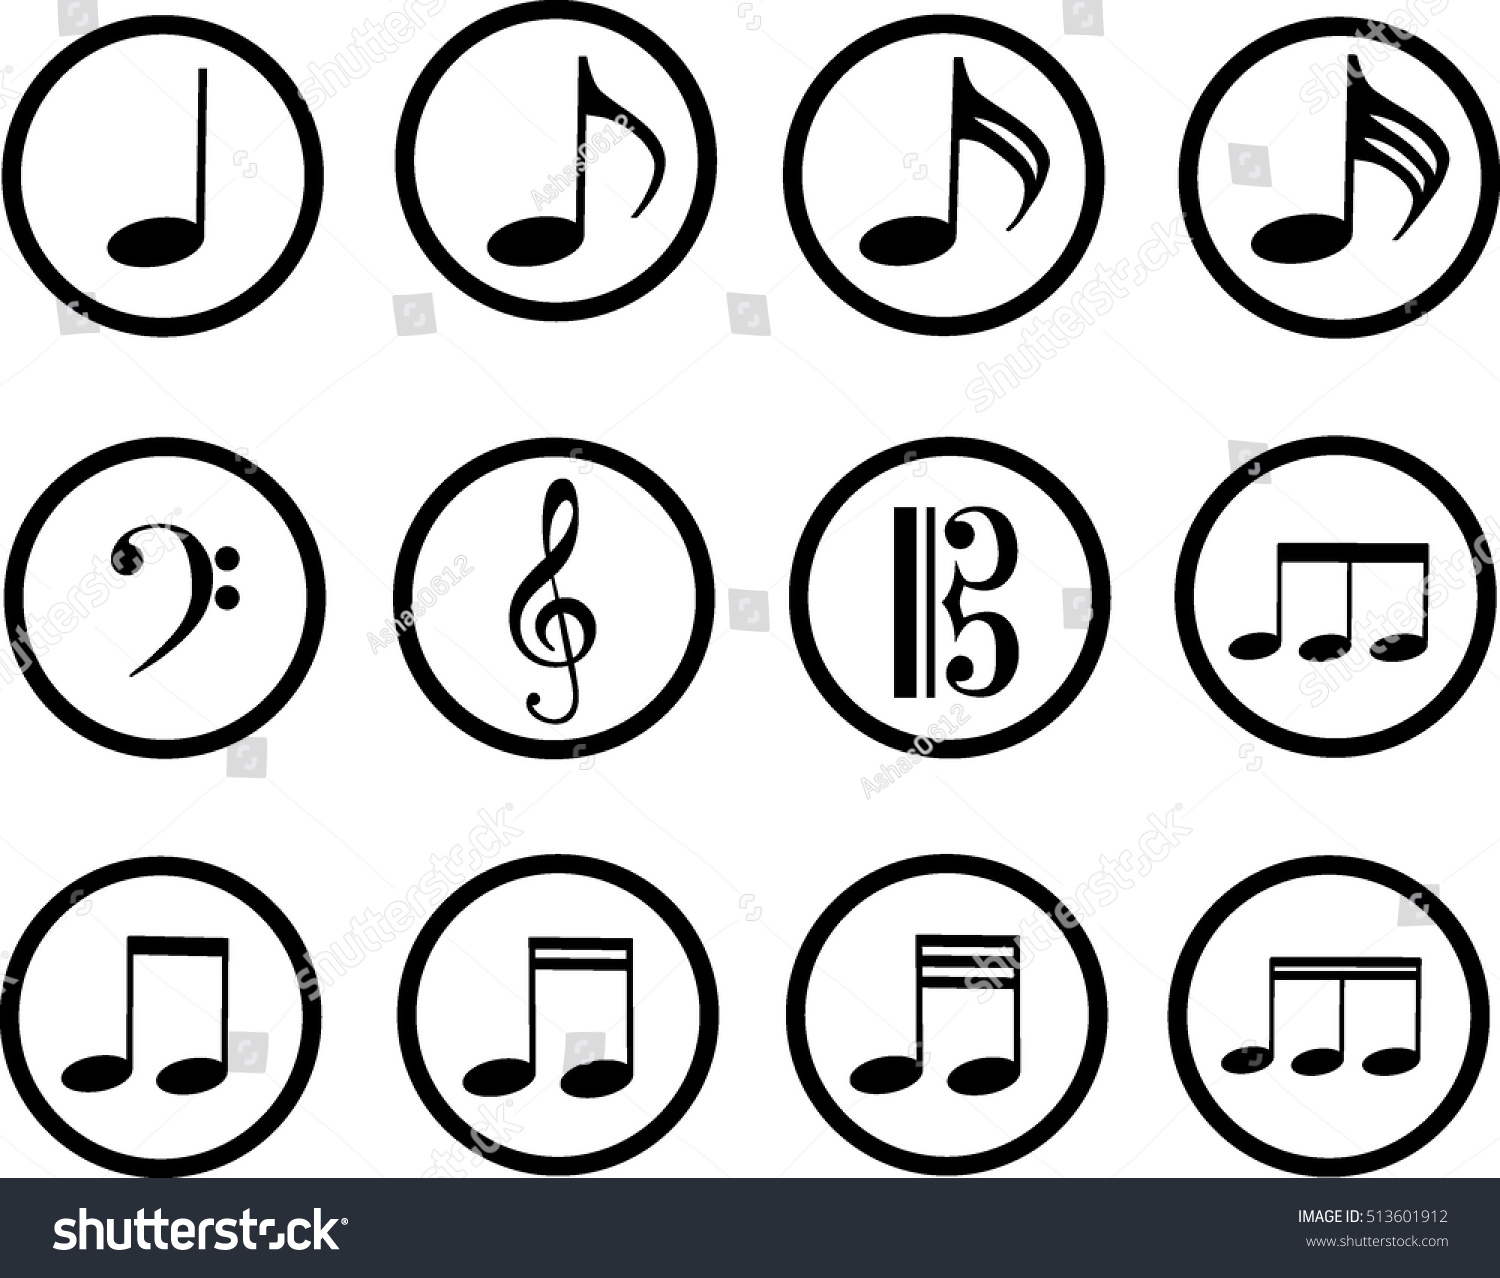 Black icons music treble clef bass stock vector 513601912 black icons of music treble clef and bass clef music symbols vector biocorpaavc Images